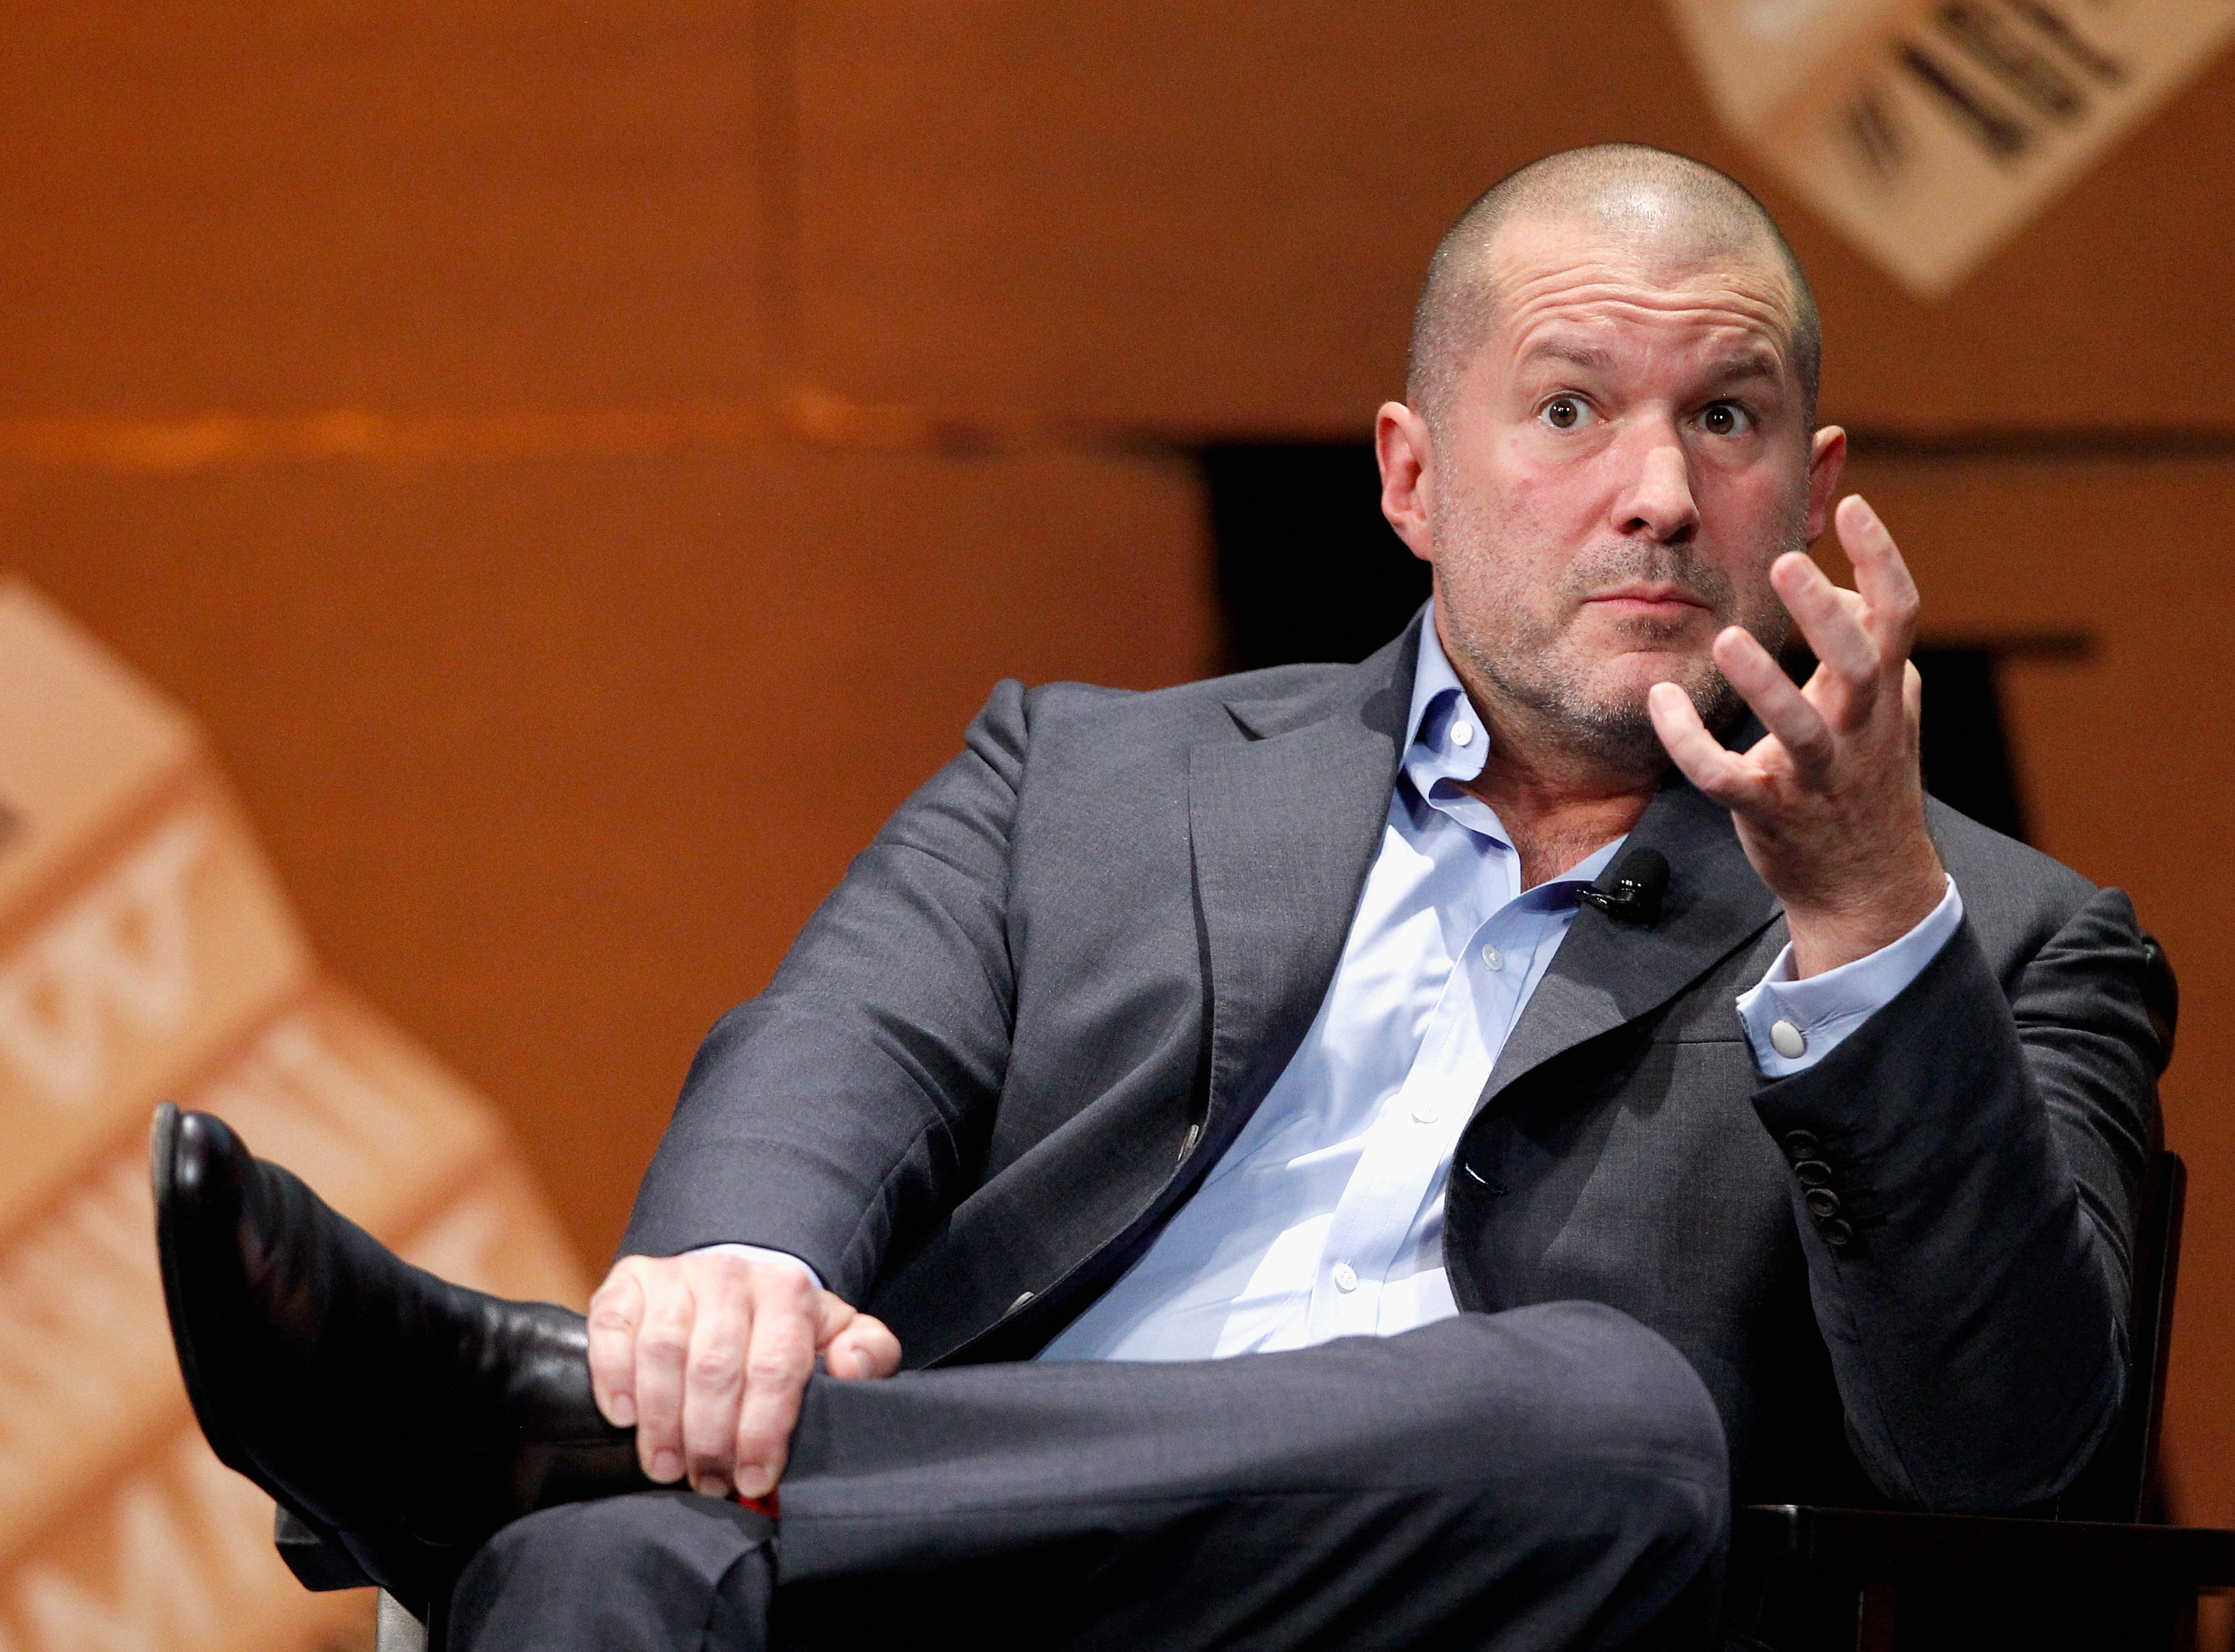 Apple Senior Vice President of Design Jonathan Ive speaks onstage during  Genius by Design  at the Vanity Fair New Establishment Summit at Yerba Buena Center for the Arts on October 9, 2014 in San Francisco, California.